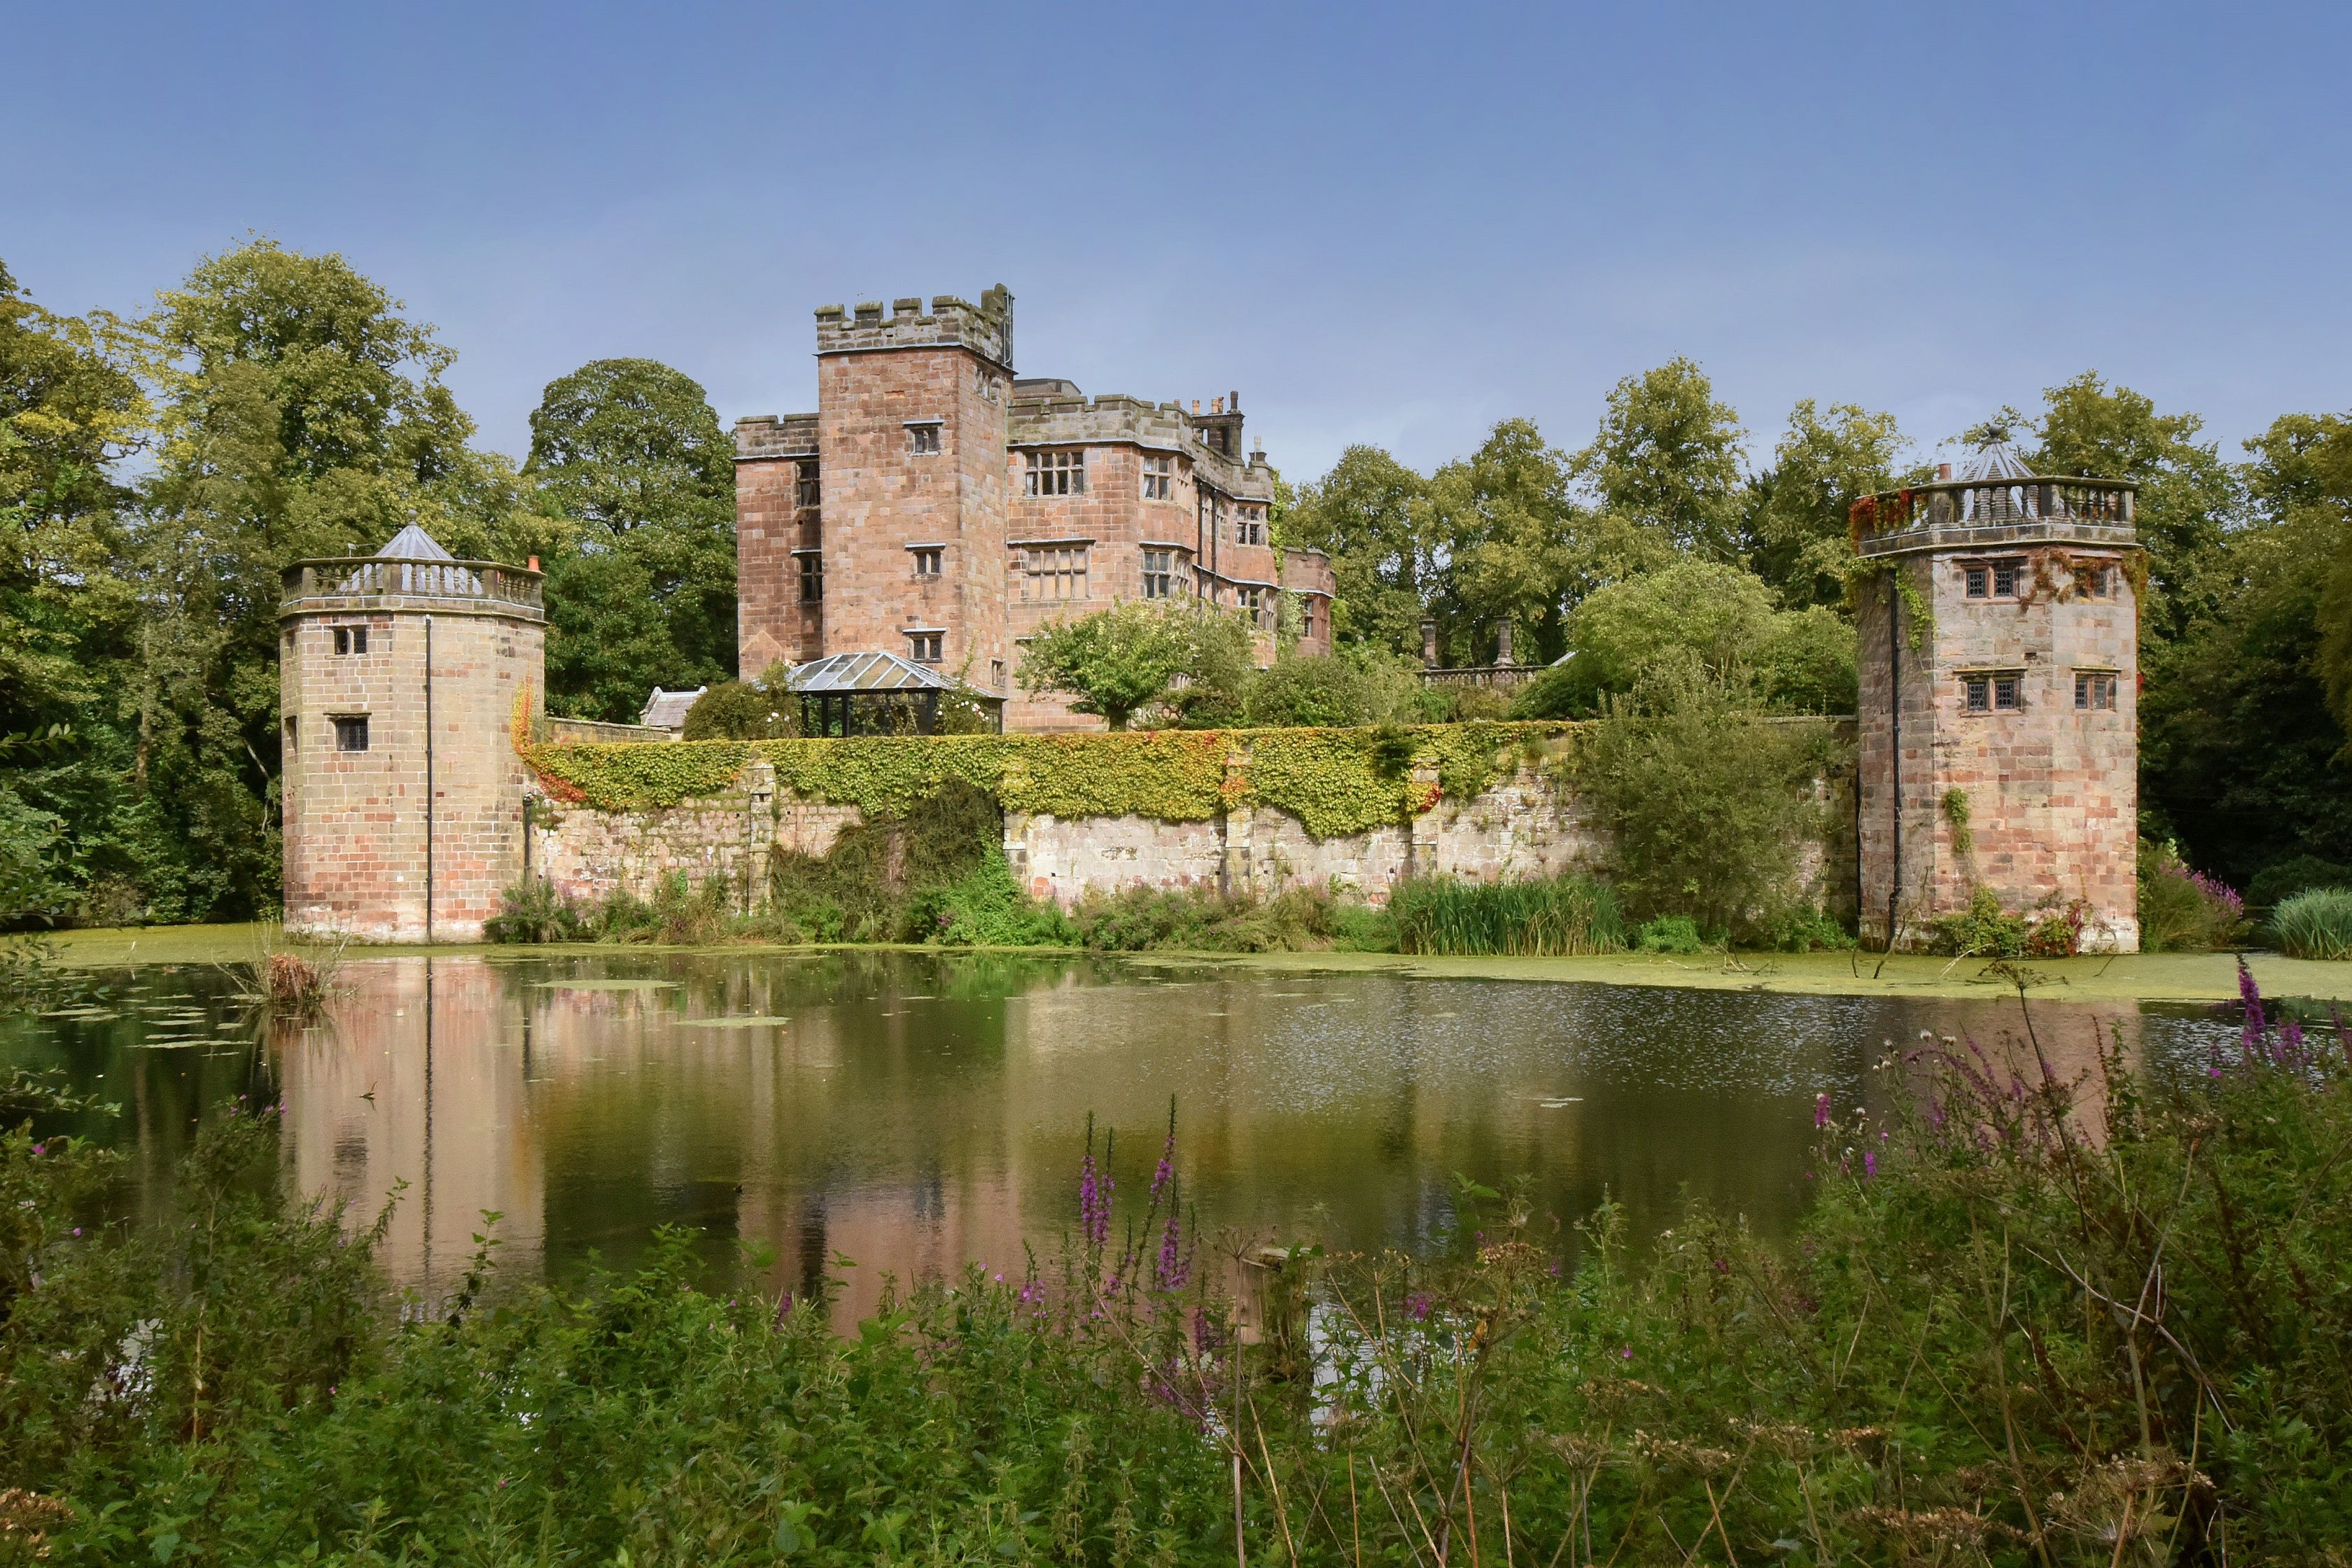 Grade I listed castle with 16 bedrooms, original moats and a dungeon is for sale in Stoke-on-Trent